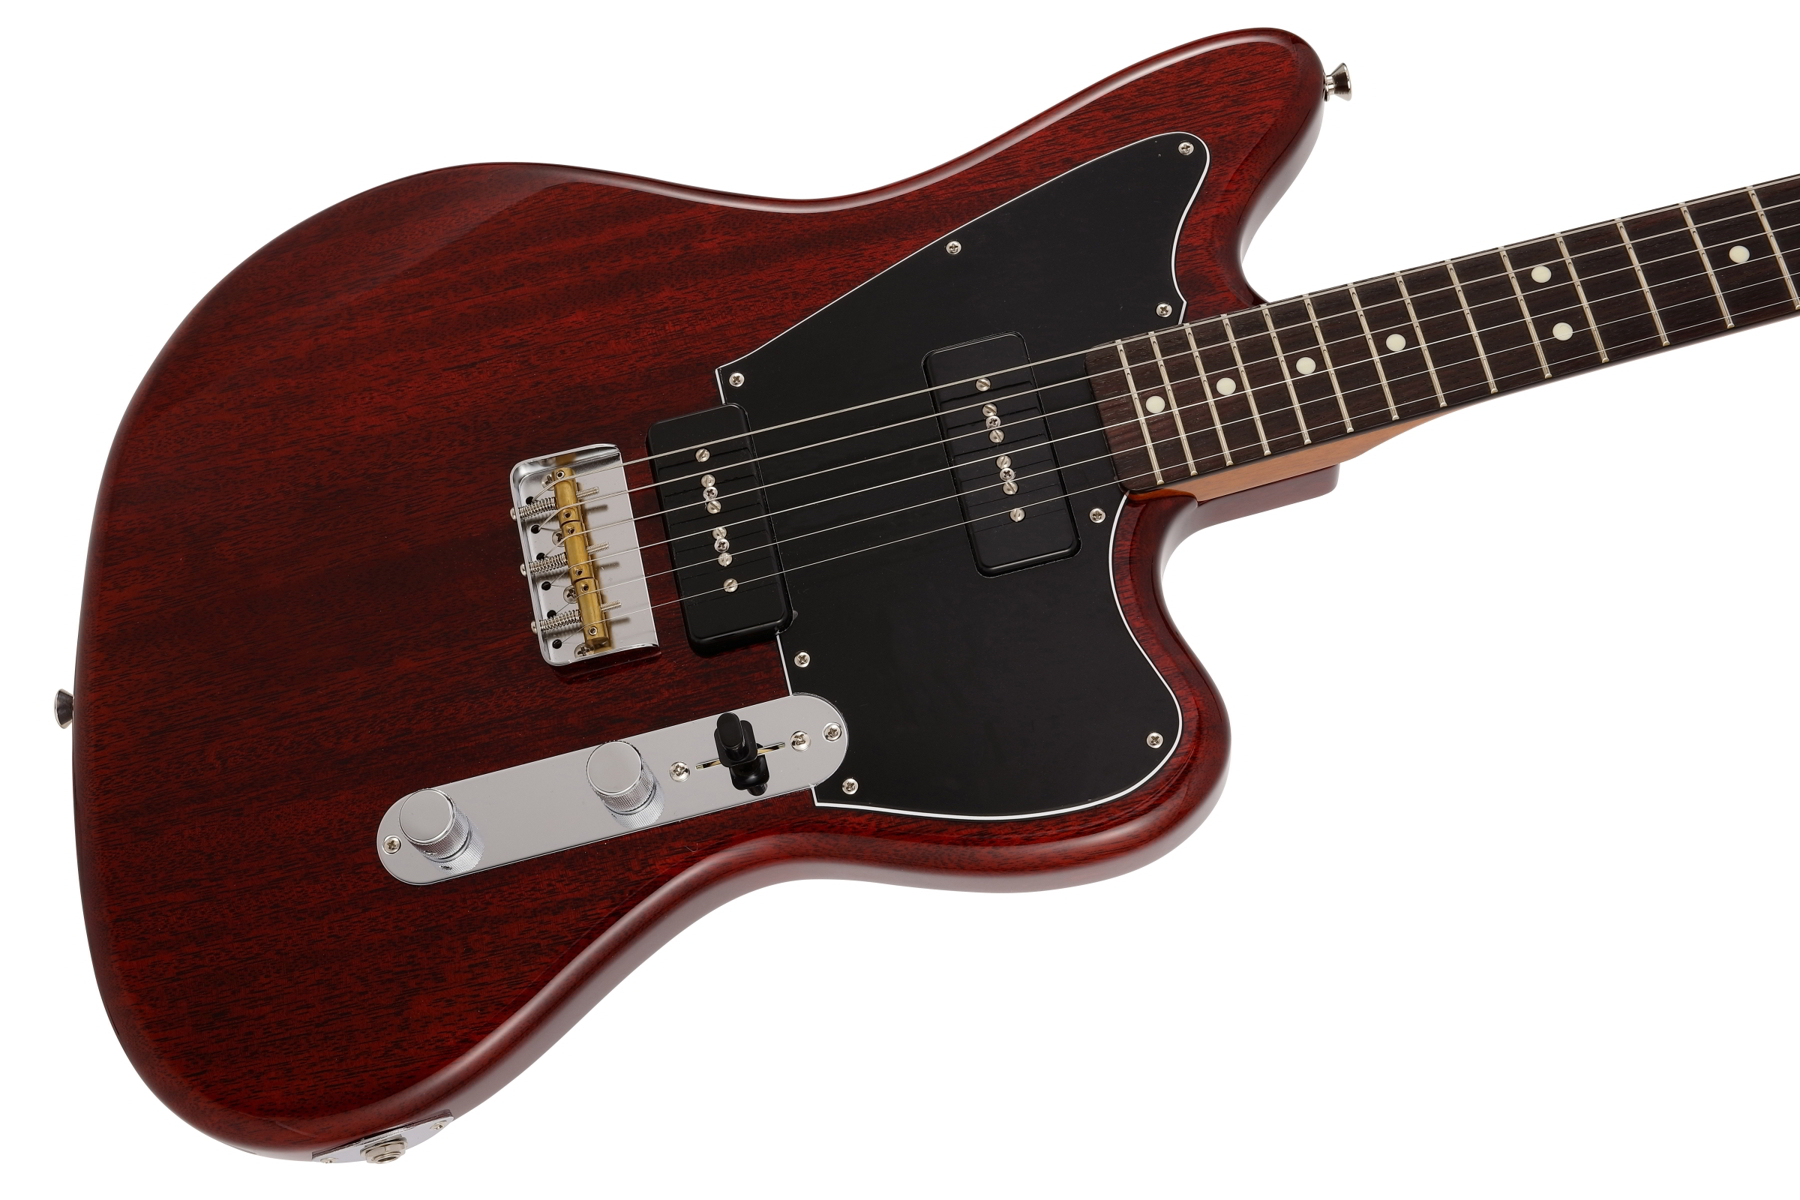 Limited Mahogany Offset Telecaster P90 Crimson Red Trans追加画像